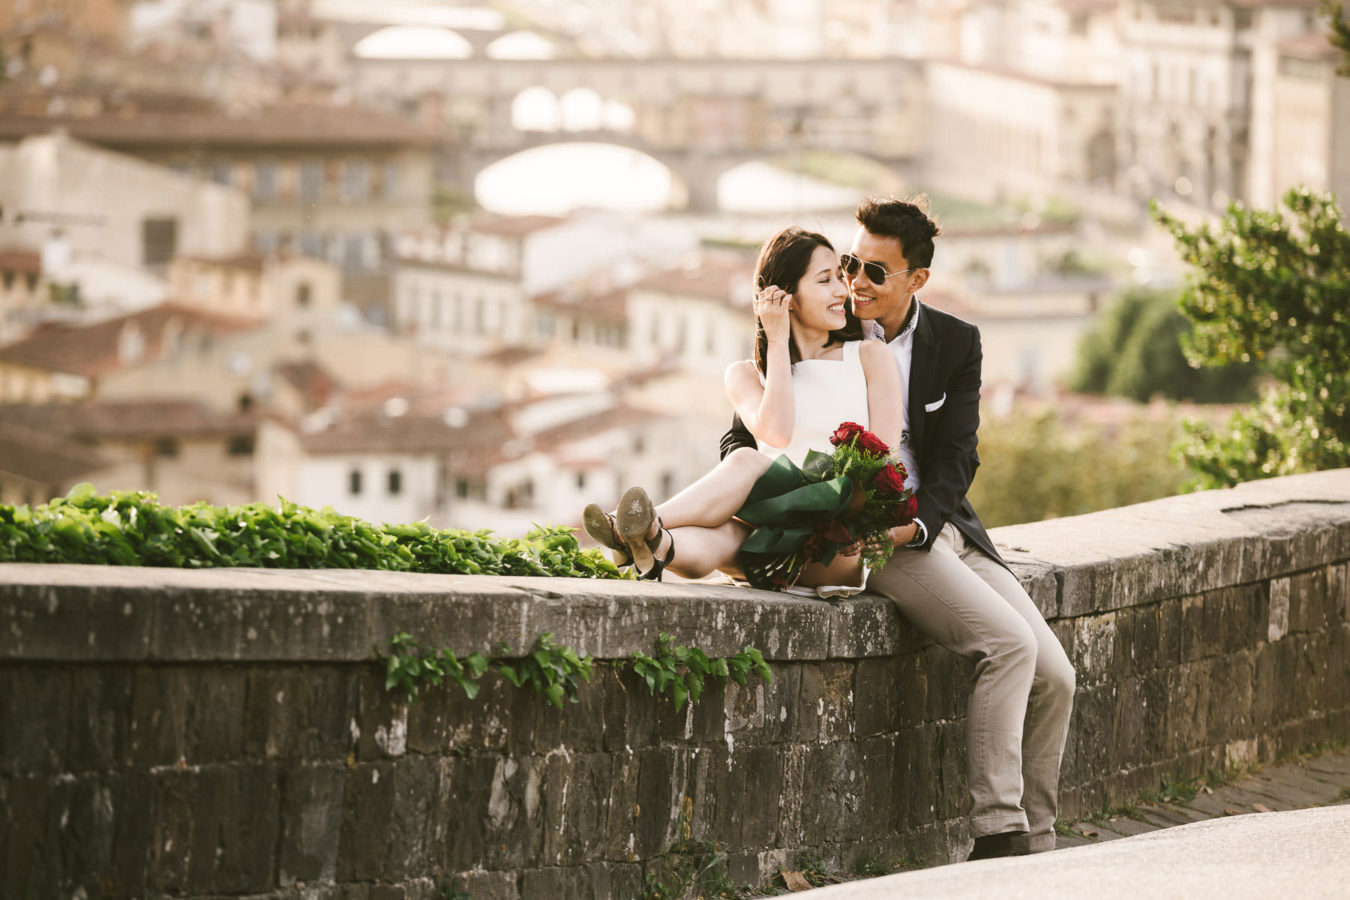 Surprise proposal photo session in Florence panoramic view